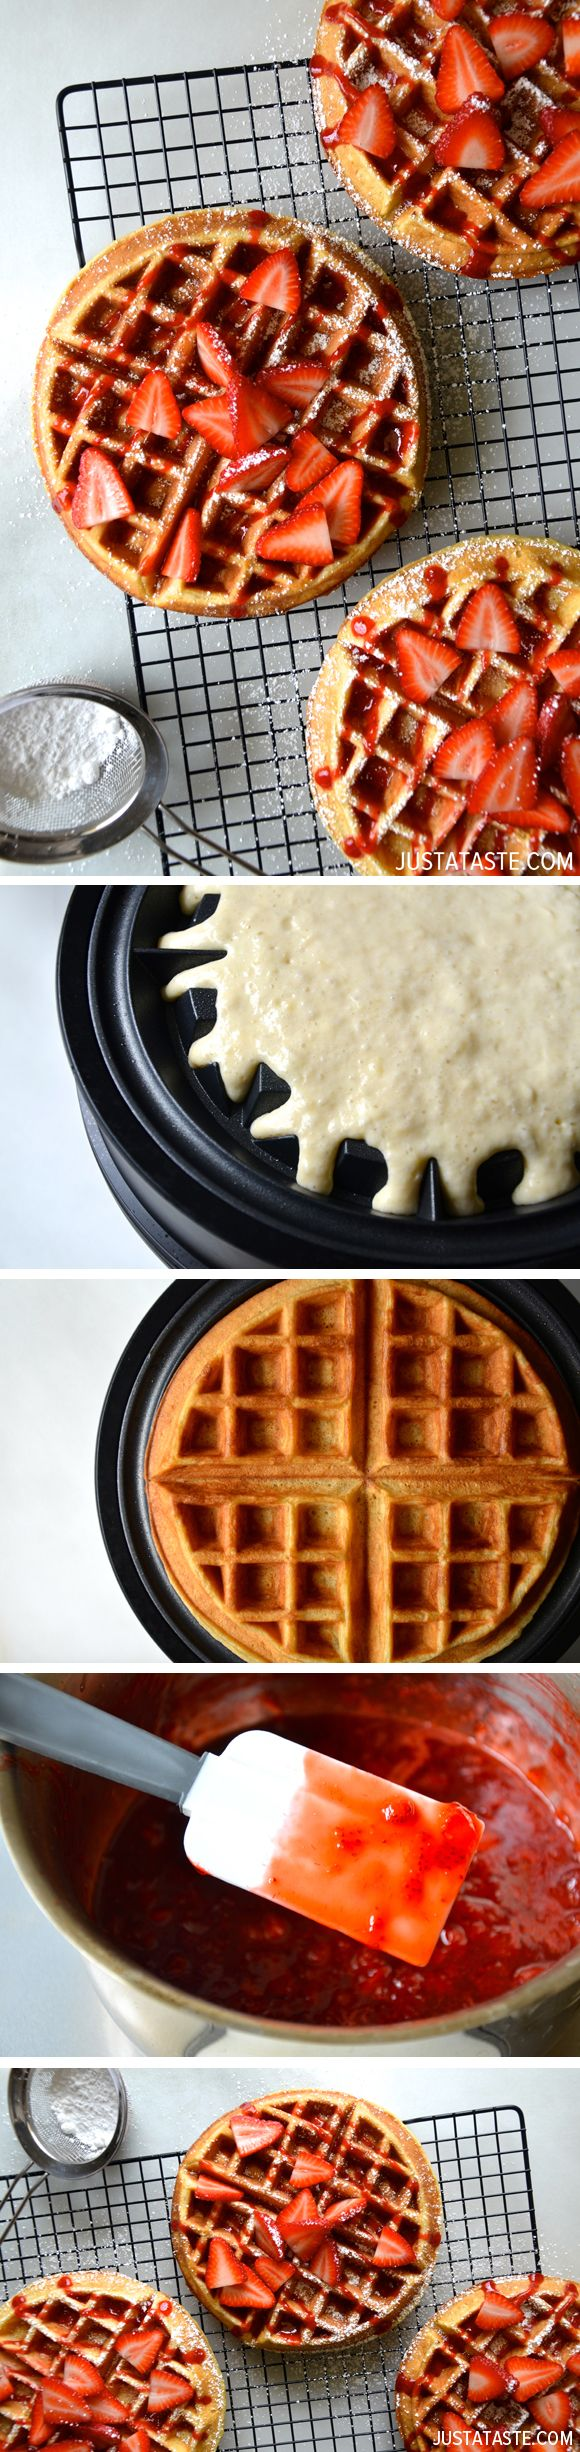 Buttermilk Waffles with Fresh Strawberry Syrup #recipe @justataste